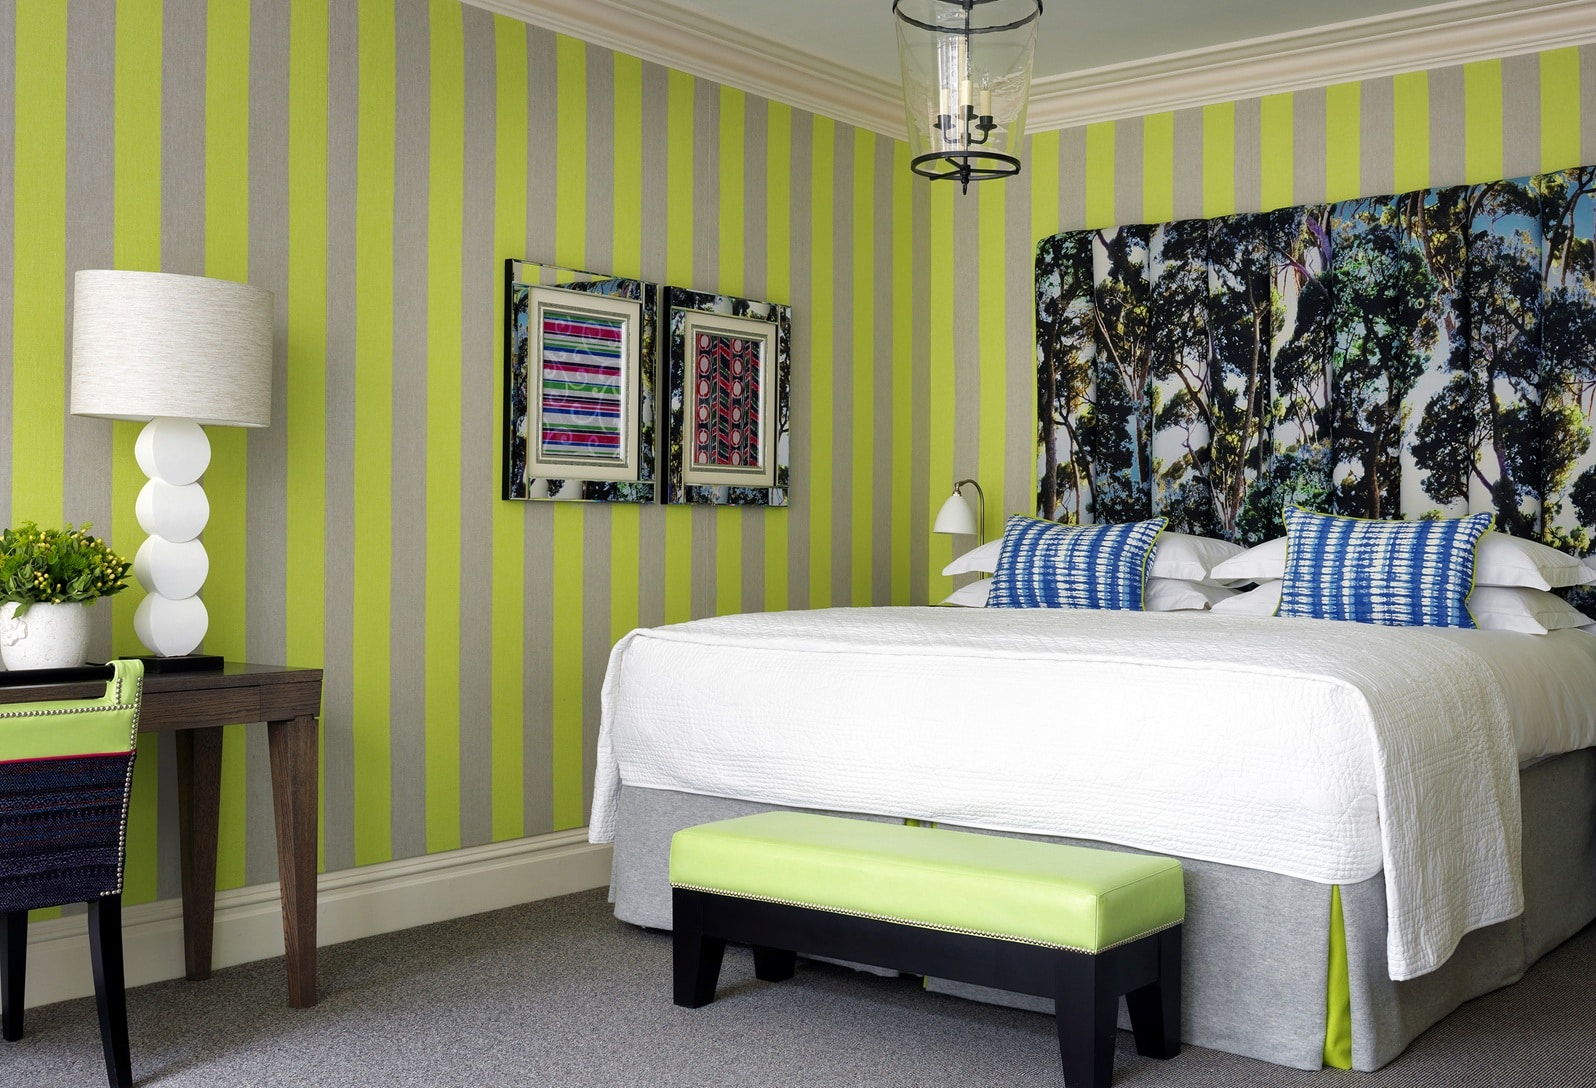 Places to stay in London - Ham Yard Hotel